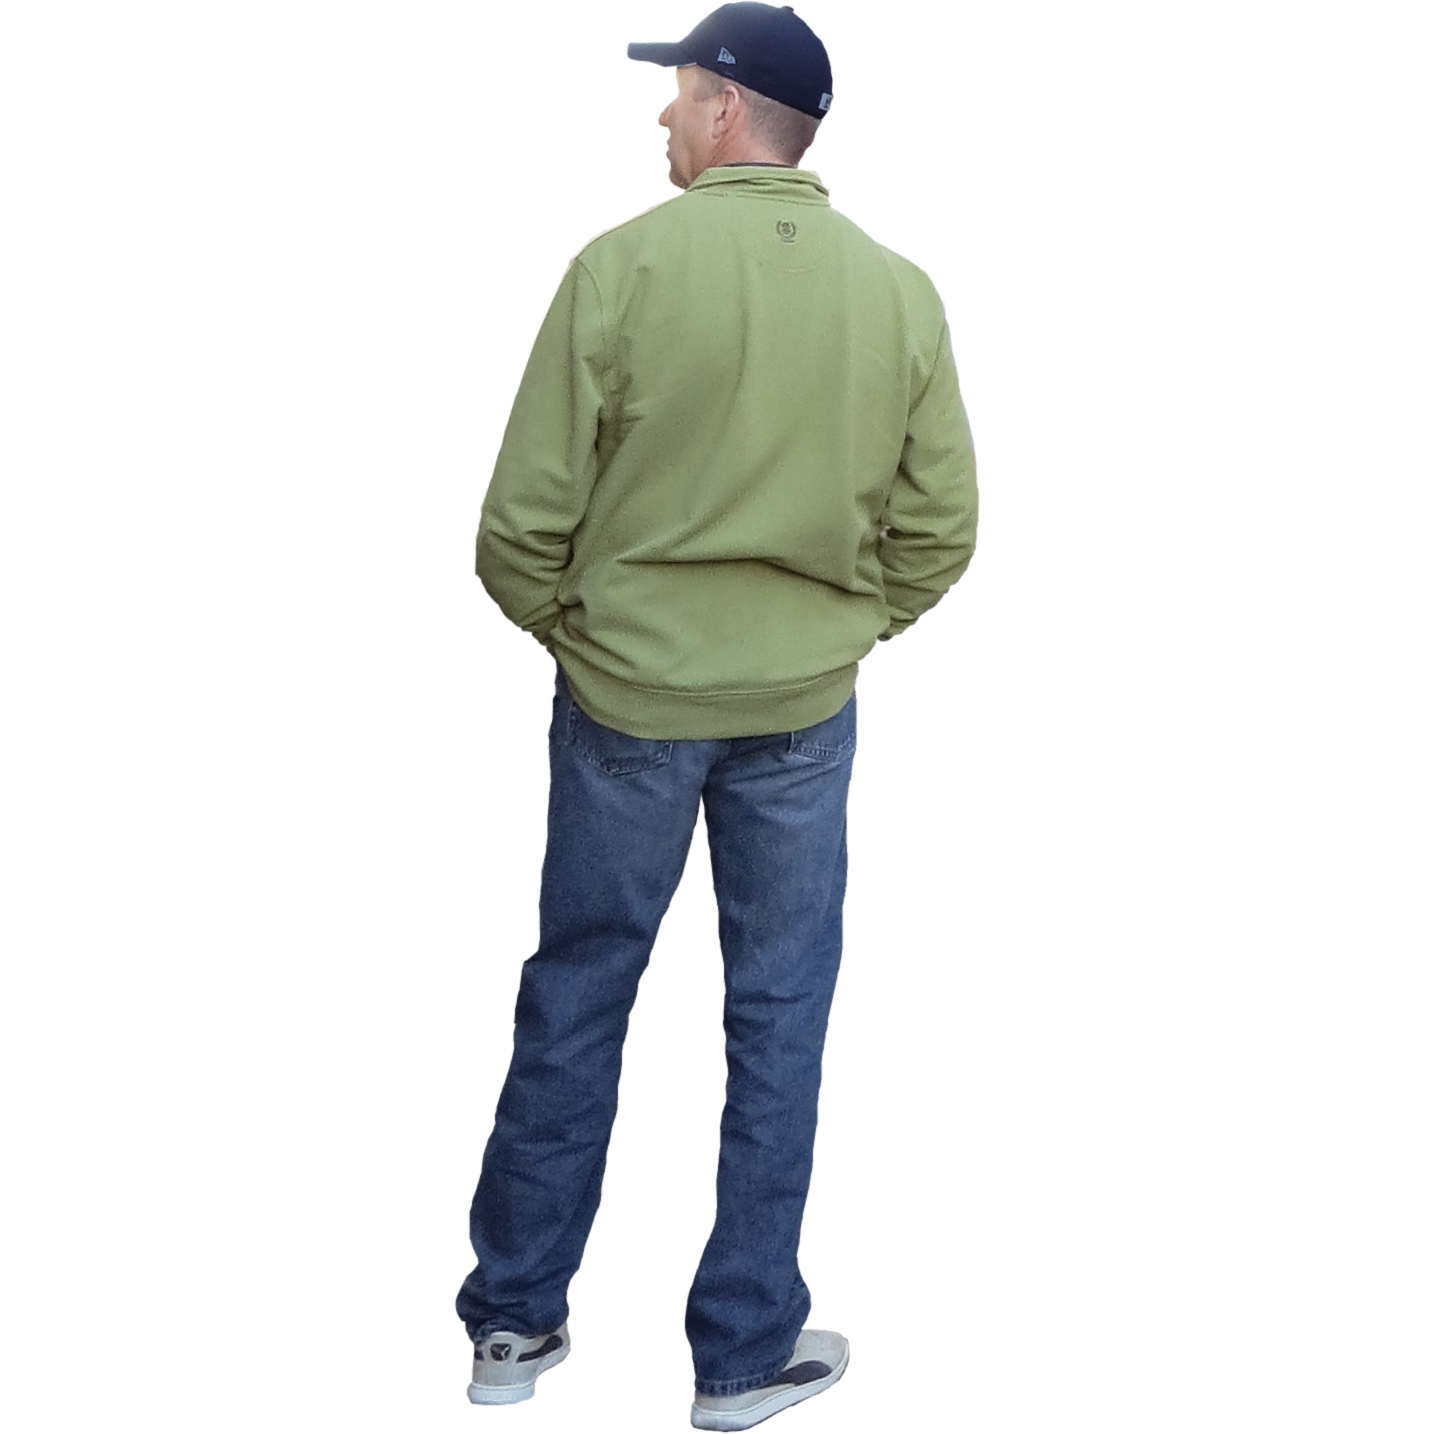 Man back png. Image purepng free transparent